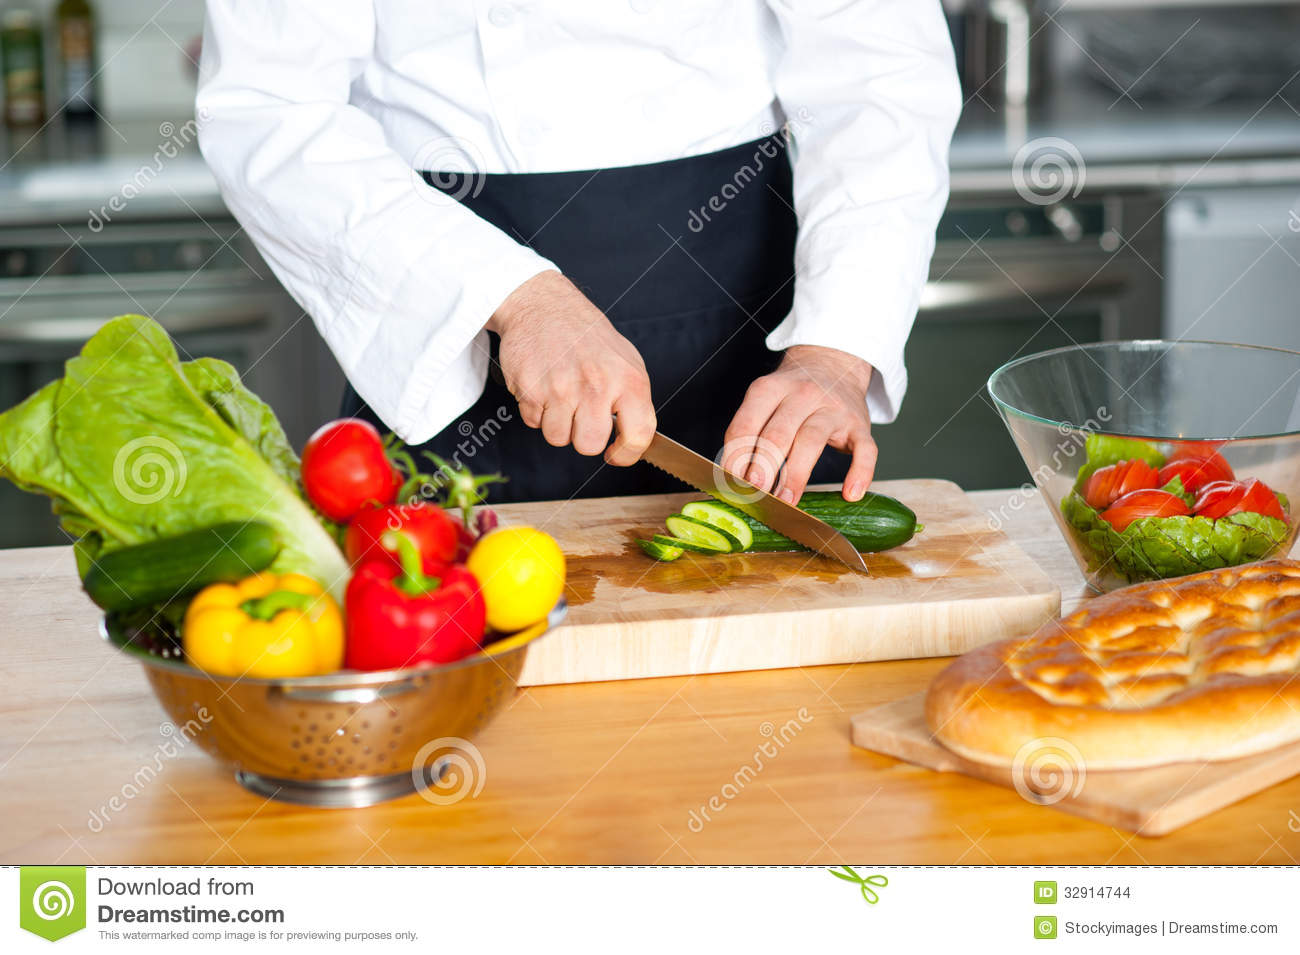 Chef Chopping Vegetables Stock Images - Image: 32914744